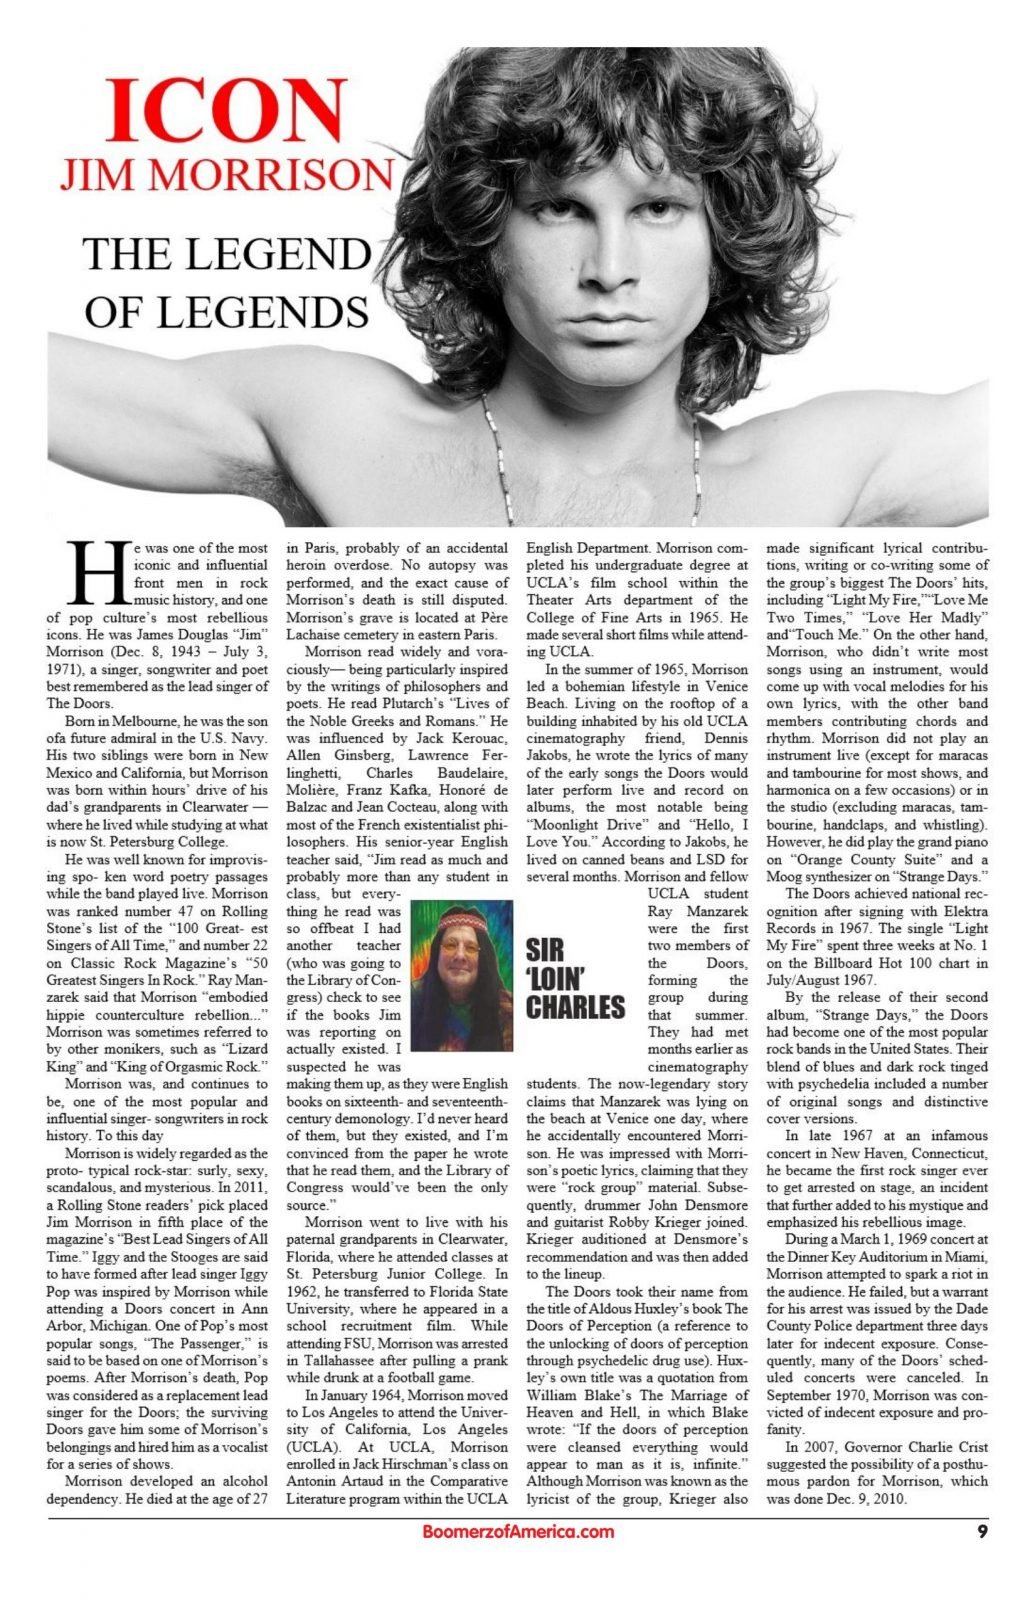 Icon Jim Morrison June 2019 Article